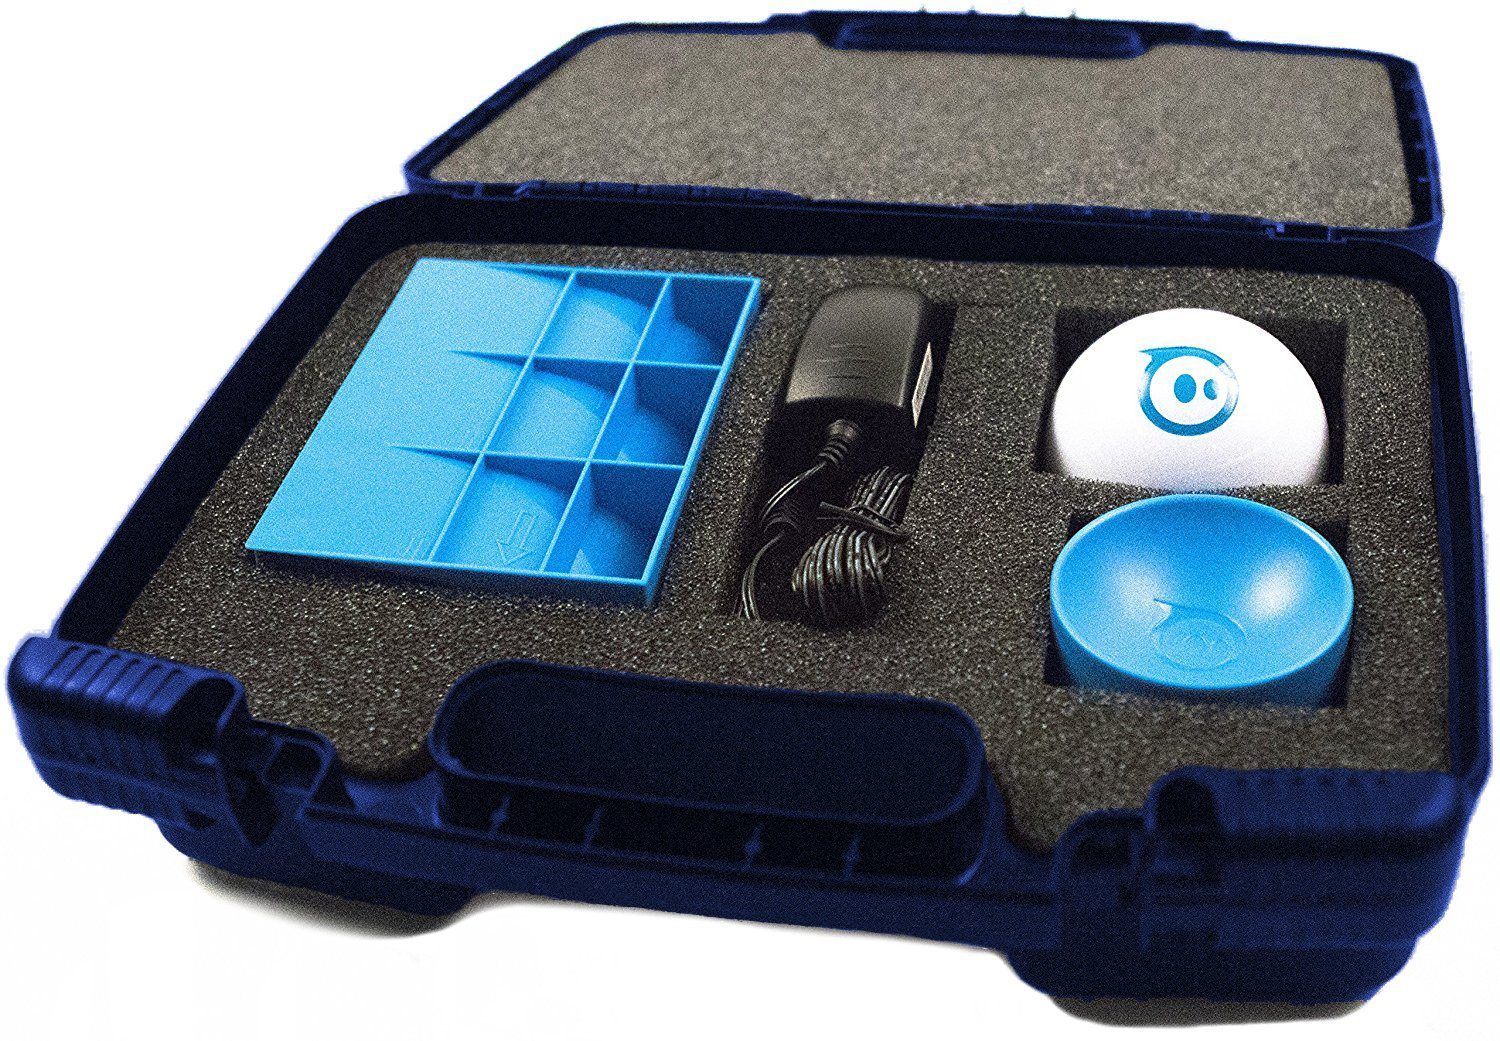 Life Made Better Storage Organizer - Compatible with Sphero 2.0 The App-Controlled Robot Ball and Accessories- Durable Carrying Case - Blue by Life Made Better (Image #8)